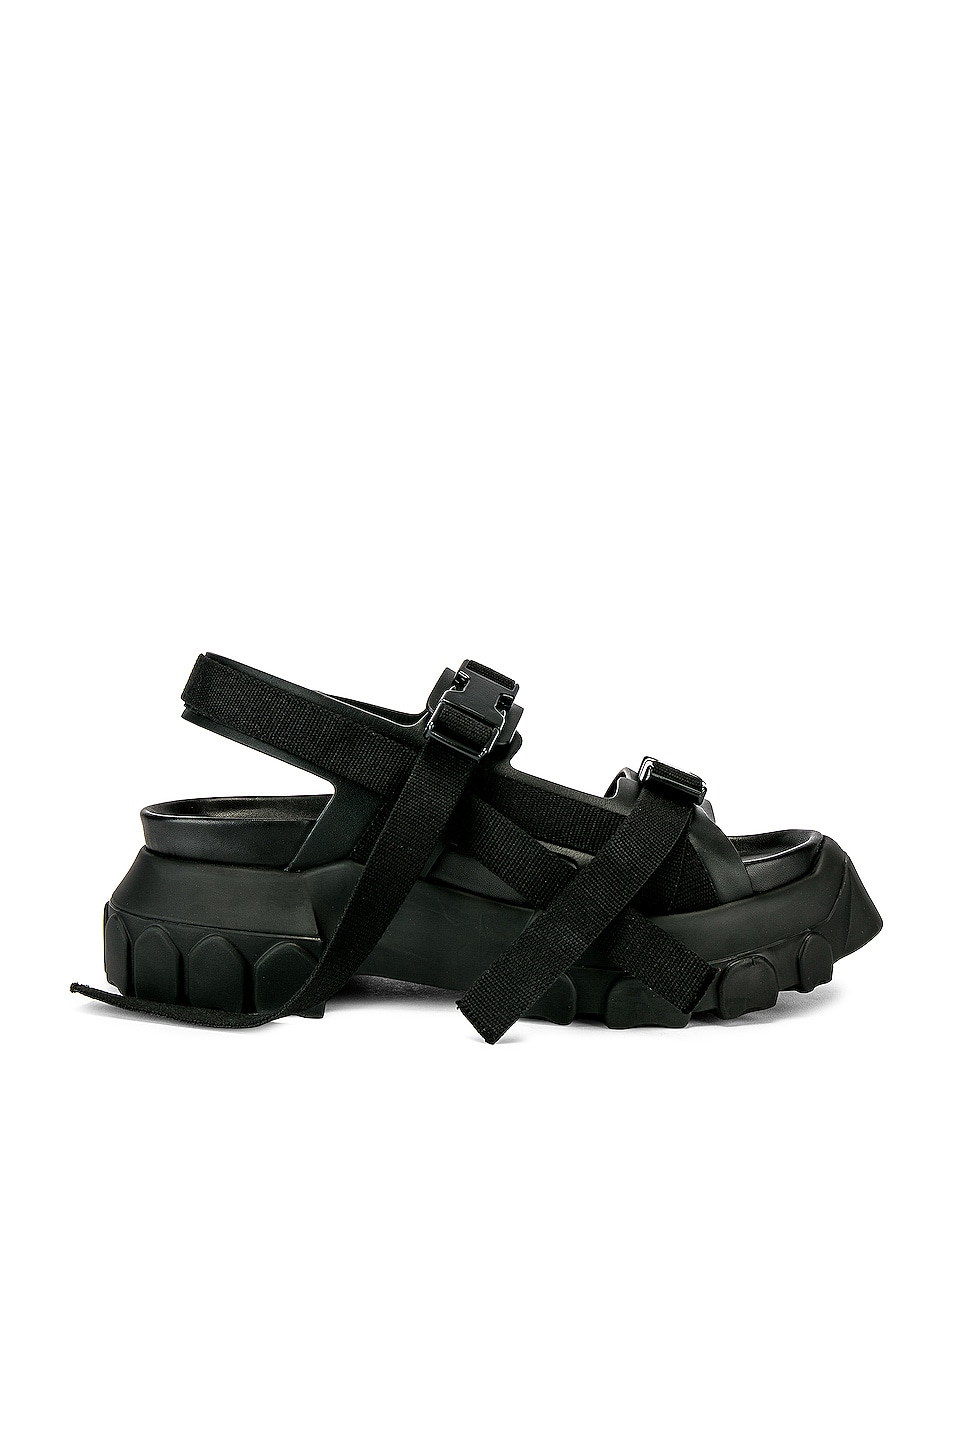 Image 2 of Rick Owens Tractor Sandals in Black